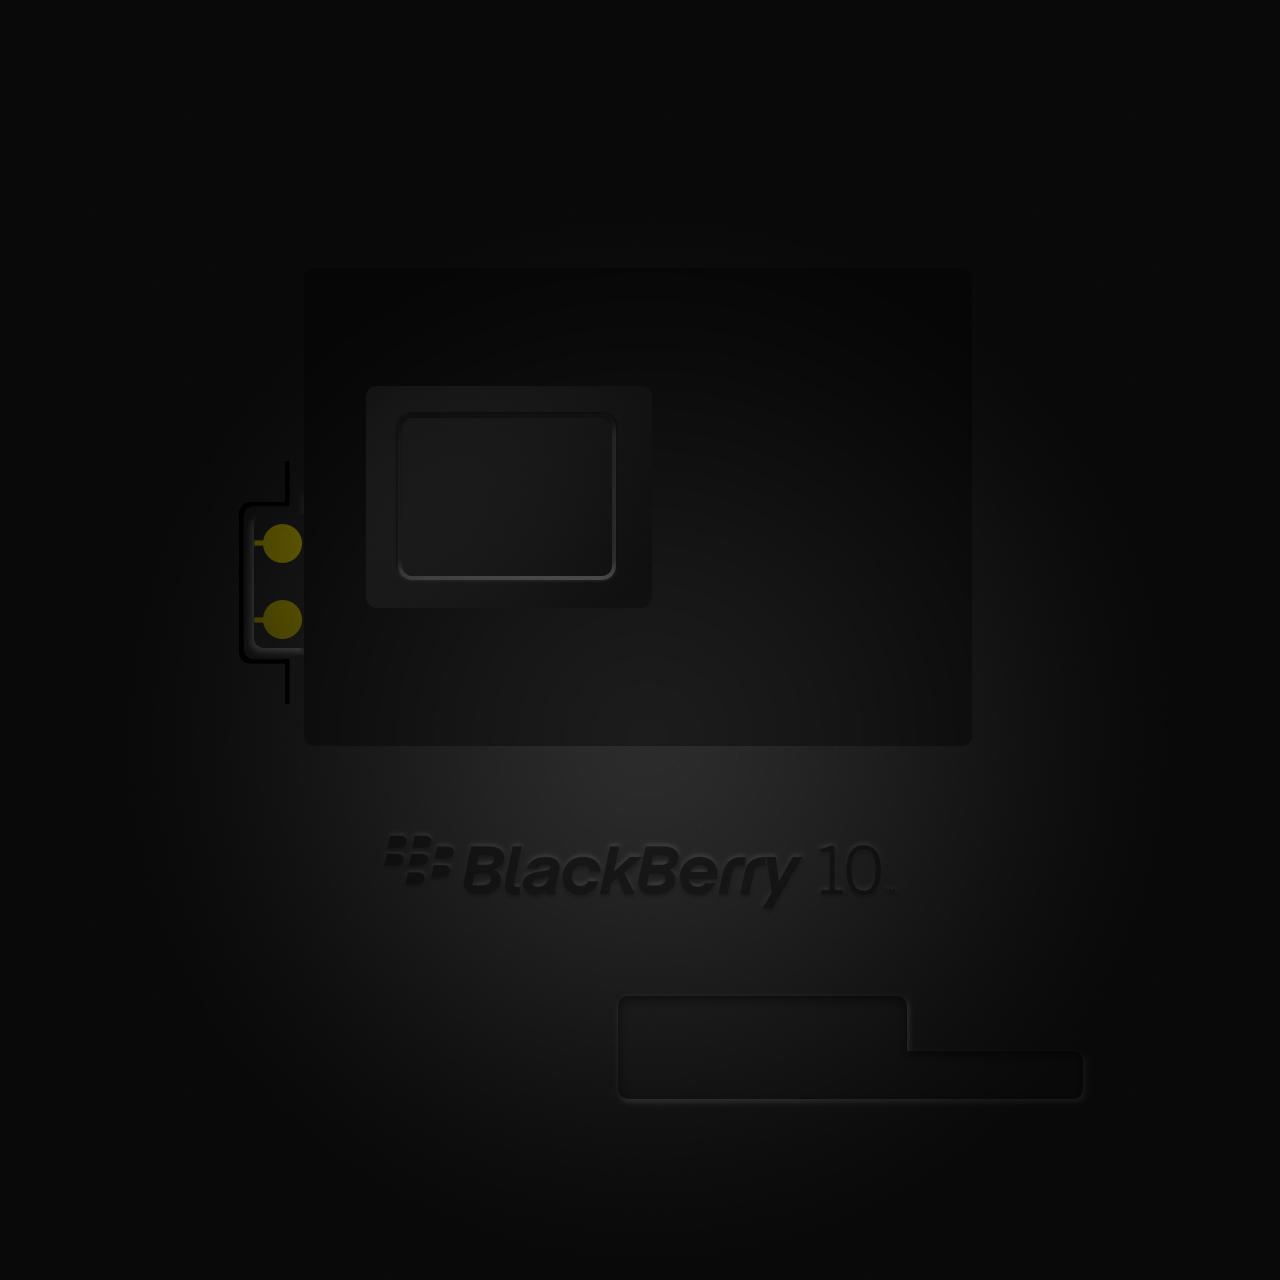 BlackBerry Q10 Limited Edition Wallpapers